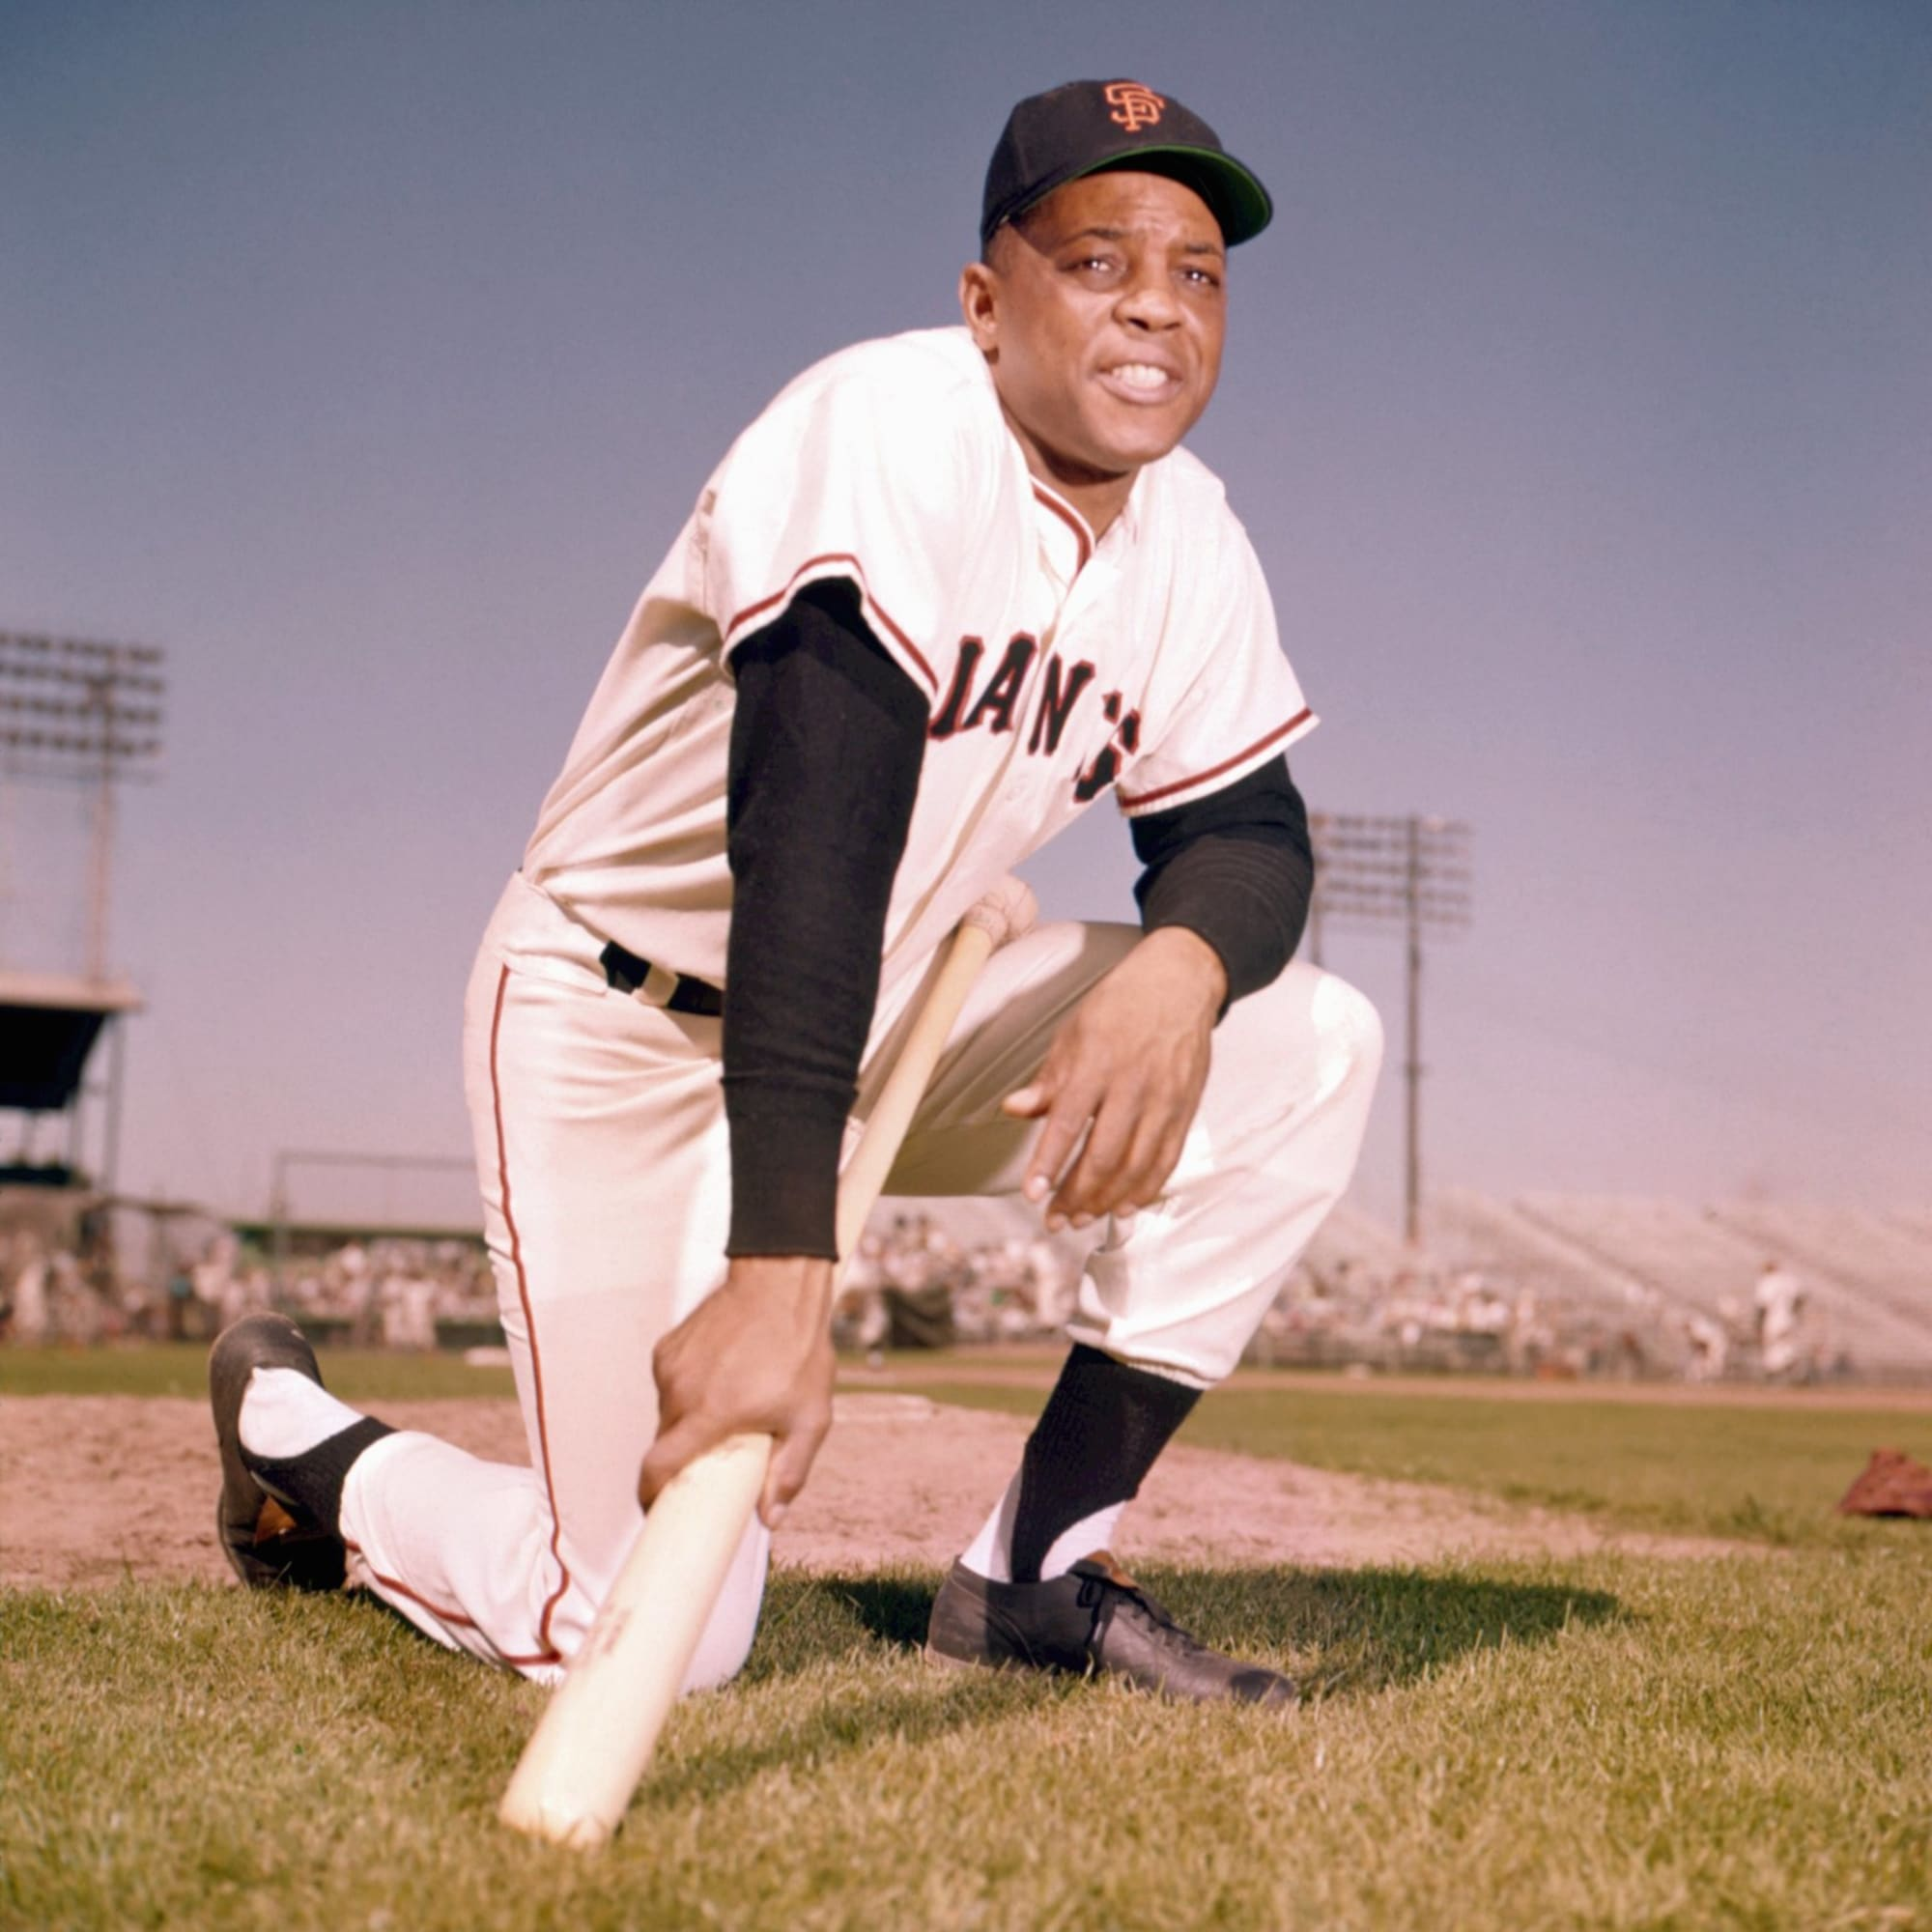 Red Sox could have signed Willie Mays before anyone else